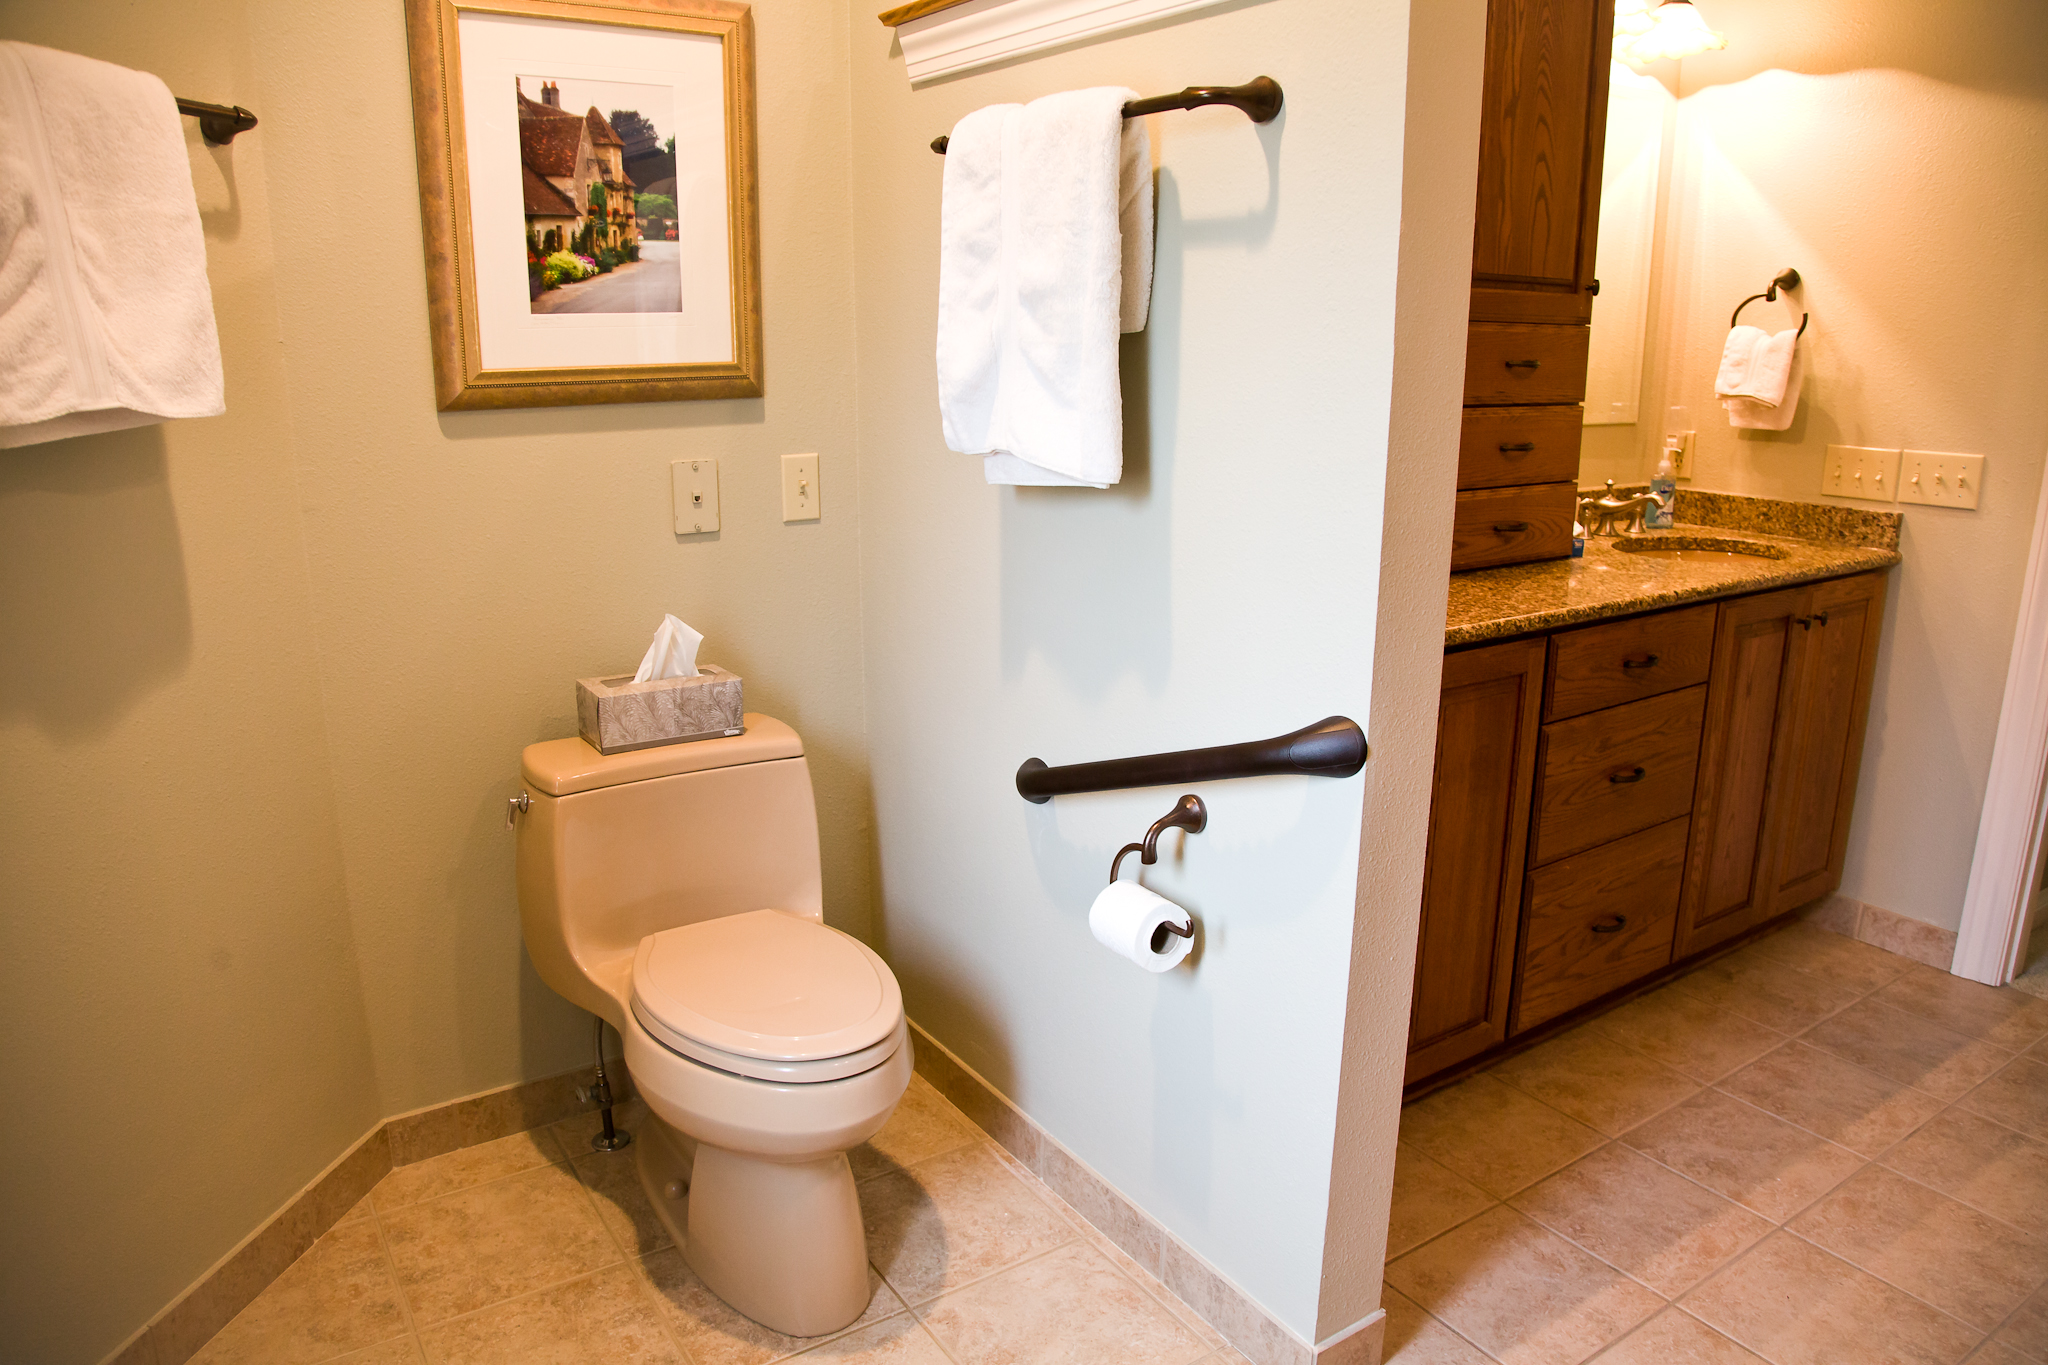 Bathroom Grab Bar Installation Height toilet grab bar | grab bar for toilet | smart accessible living